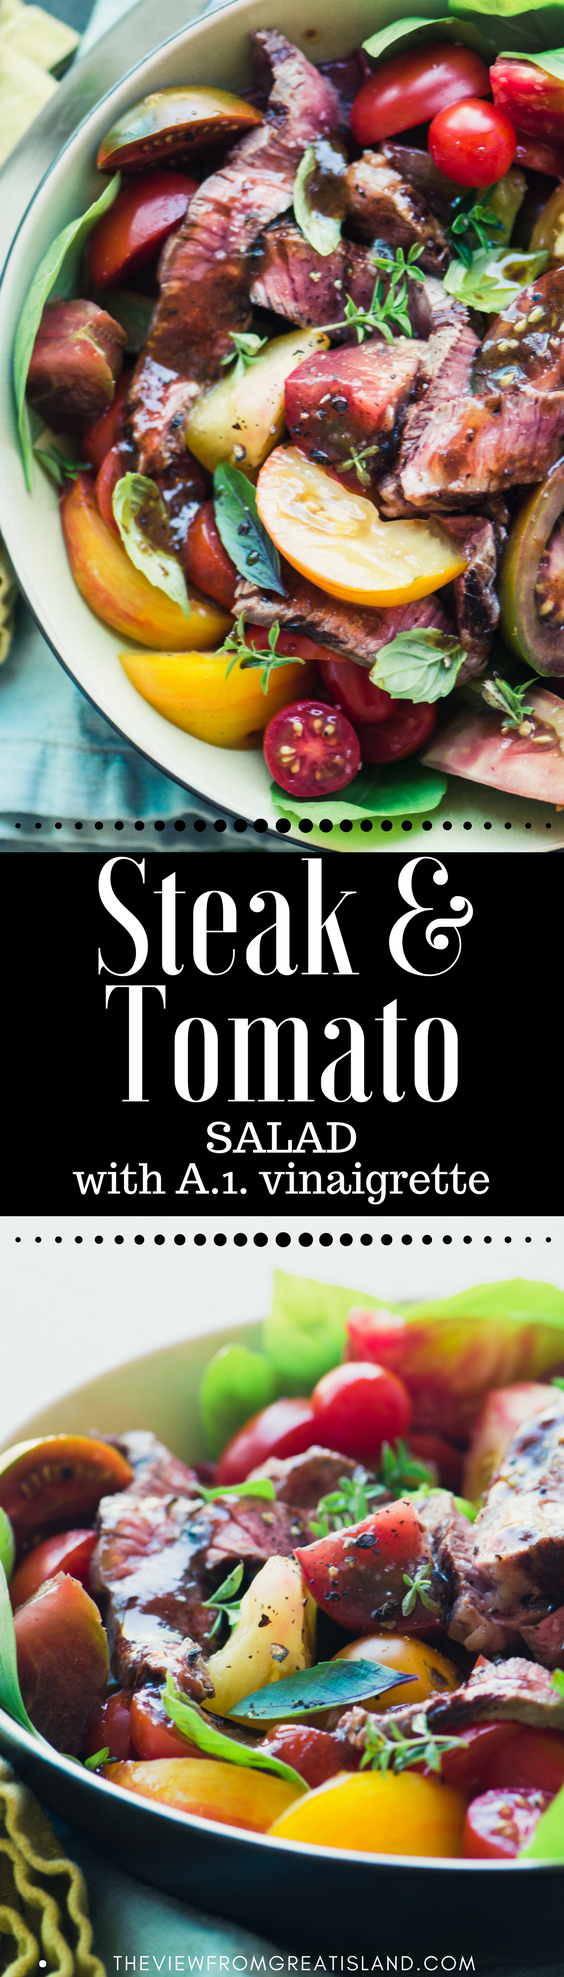 Steak and Tomato Salad ~ this yummy main course salad is as simple as cutting up fabulous end-of-summer tomatoes into rough chunks, and intertwining them with thinly sliced grilled steak. And there's only one word for that vinaigrette ~ wow! #maincoursesalad #steaksalad #tomatosalad #beef #dinner #recipe